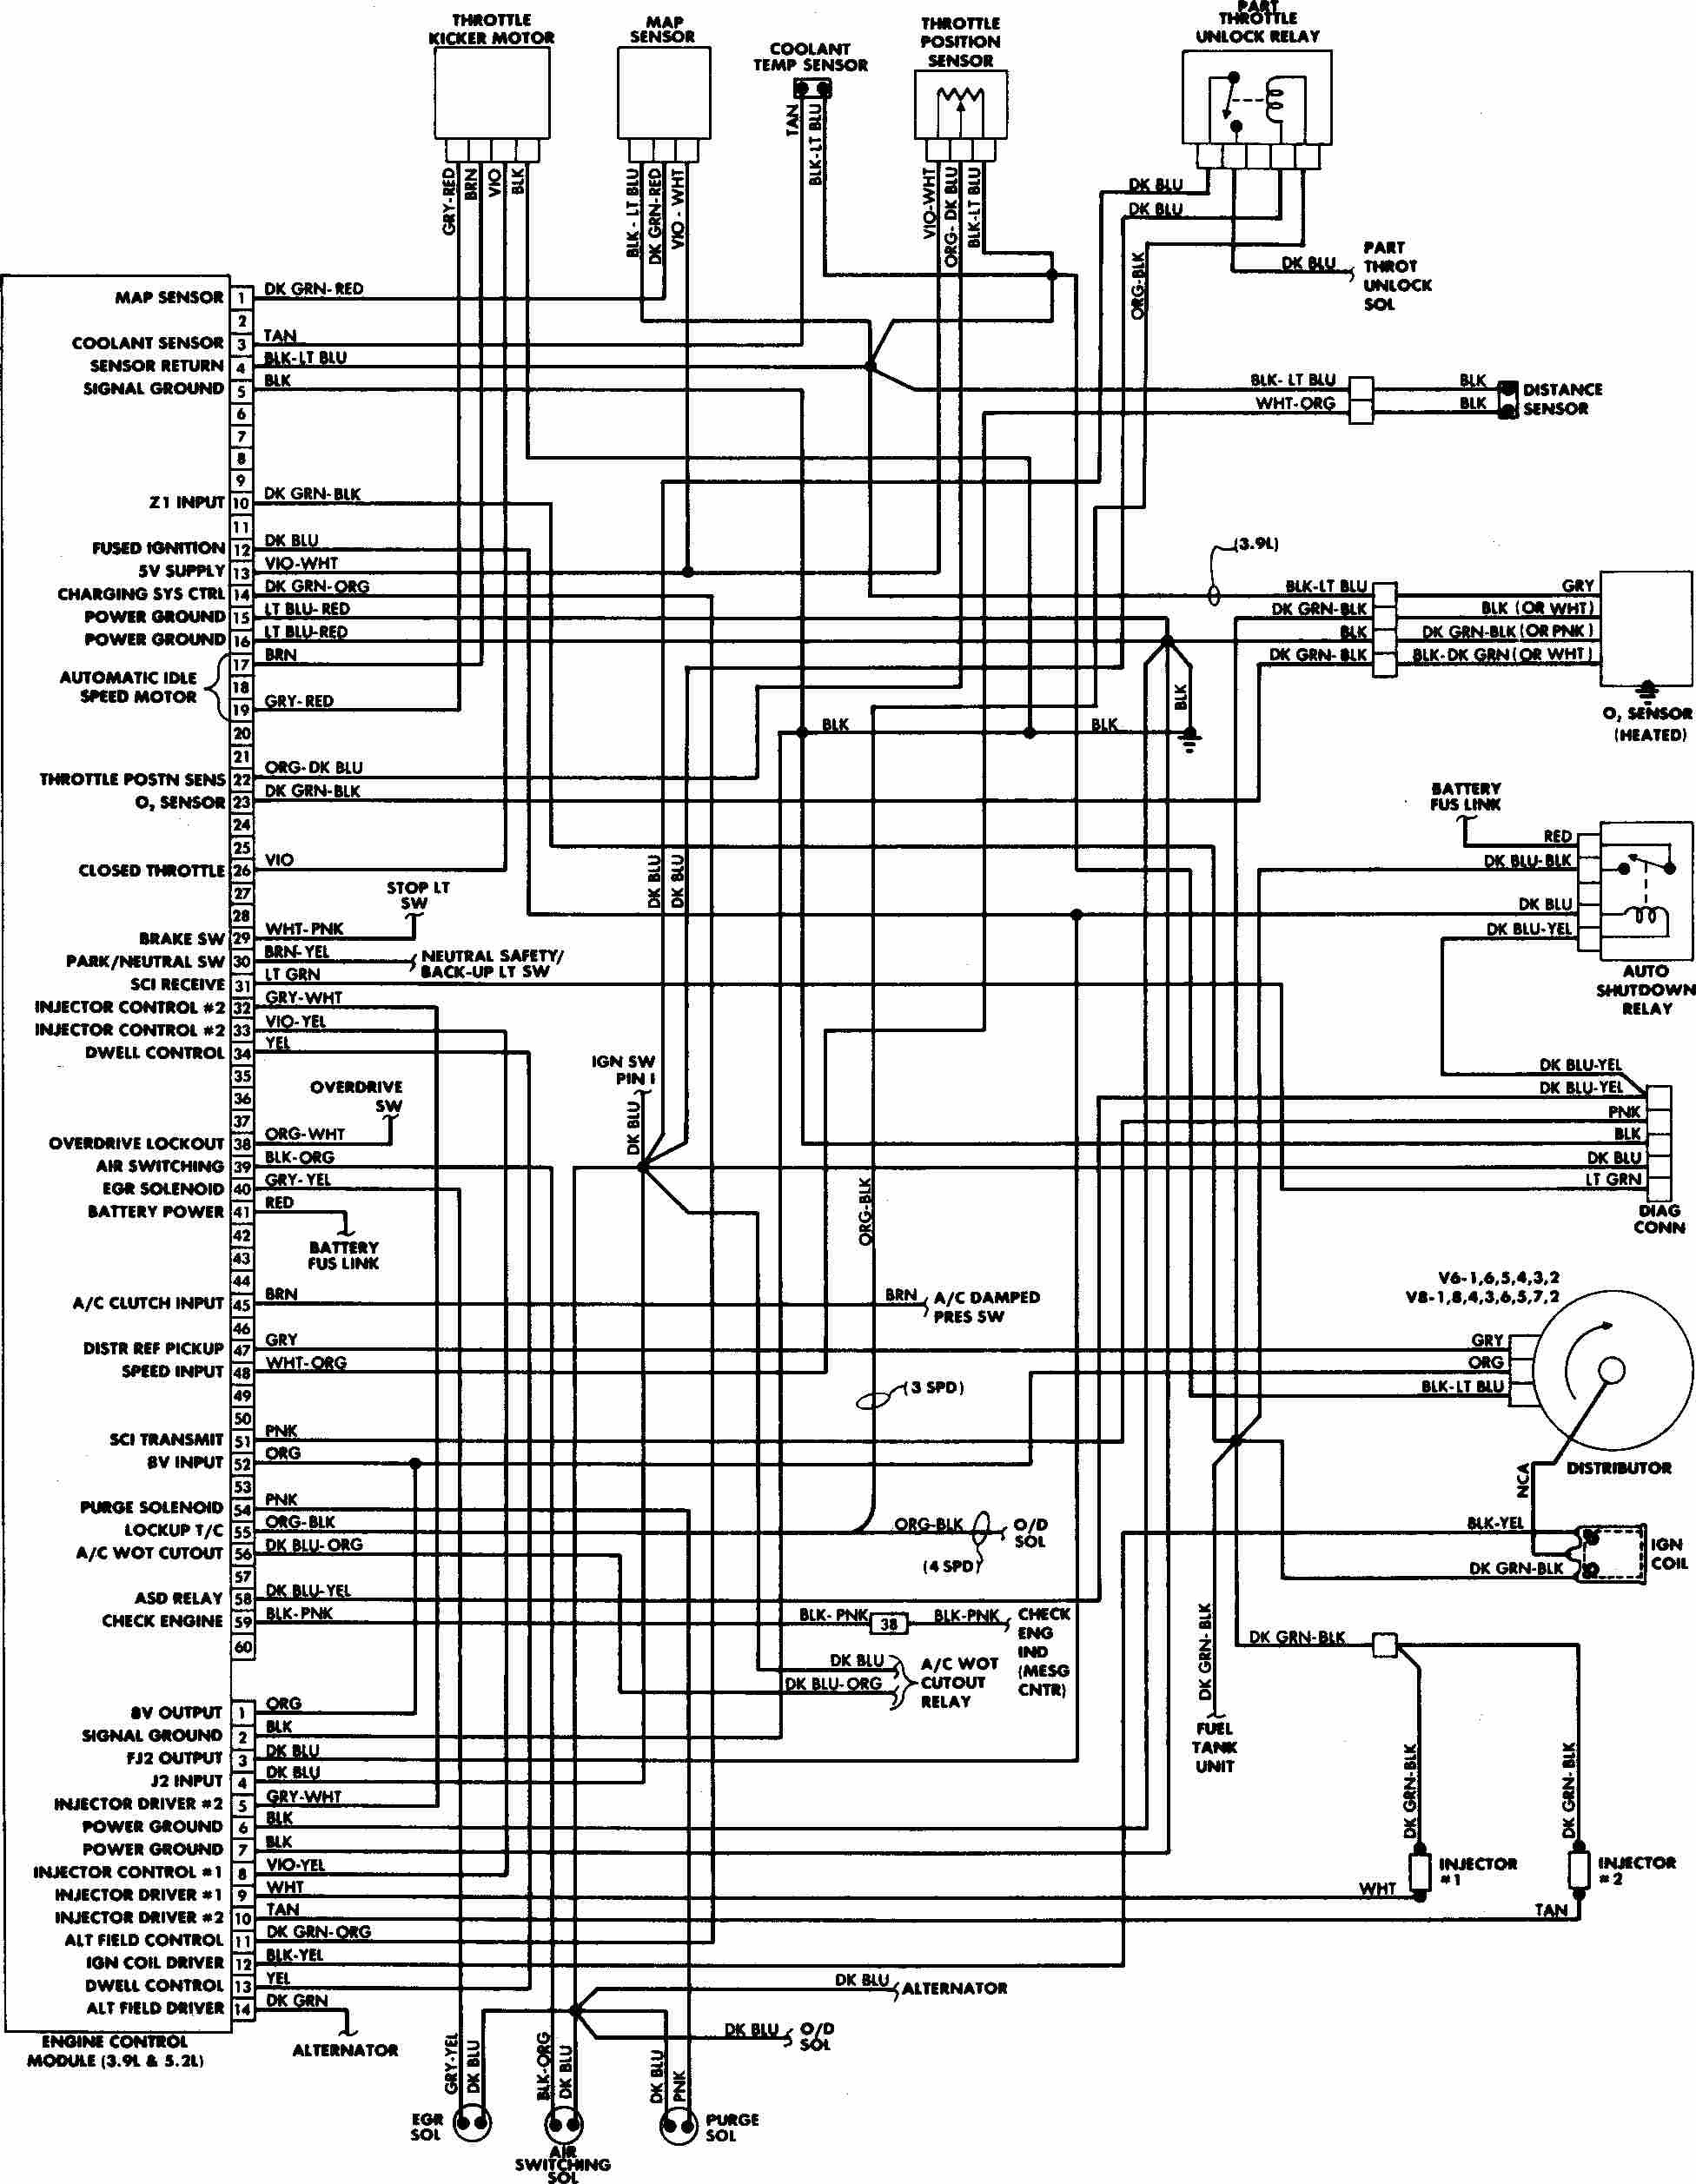 fuse box diagram 1998 dodge caravan